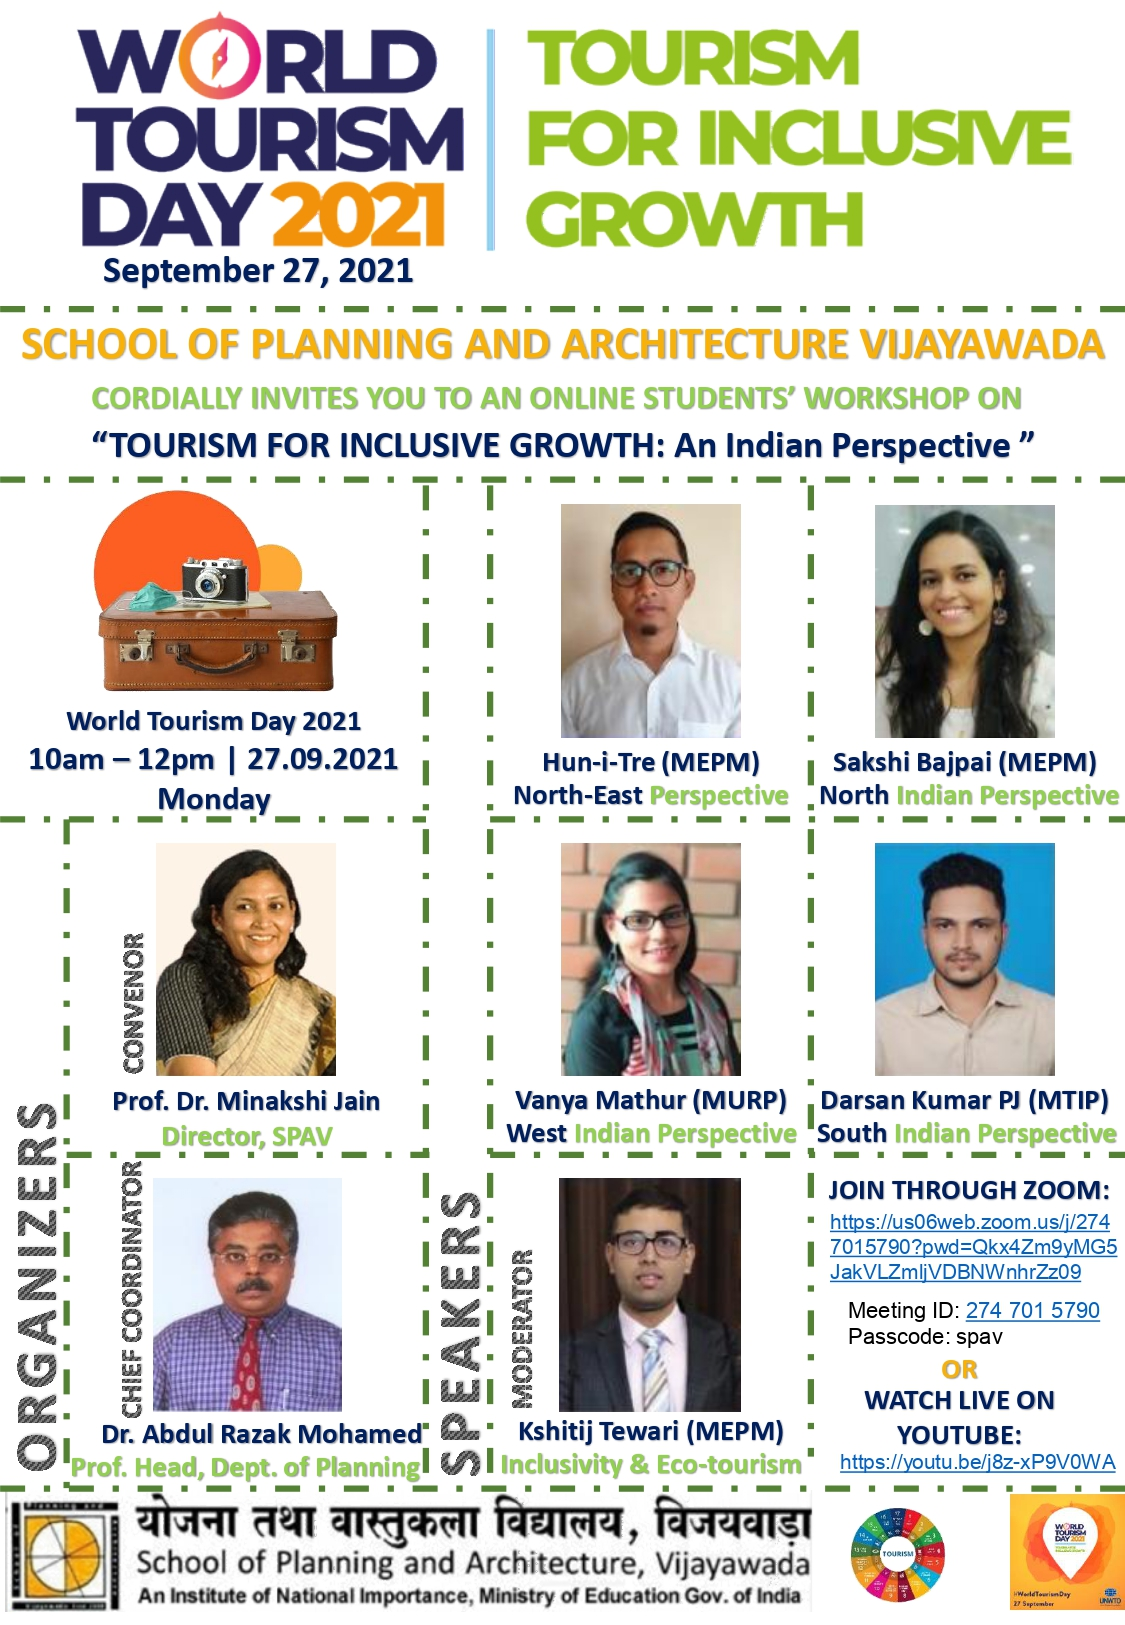 TOURISM FOR INCLUSIVE GROWTH-AN INDIAN PERSPECTIVE